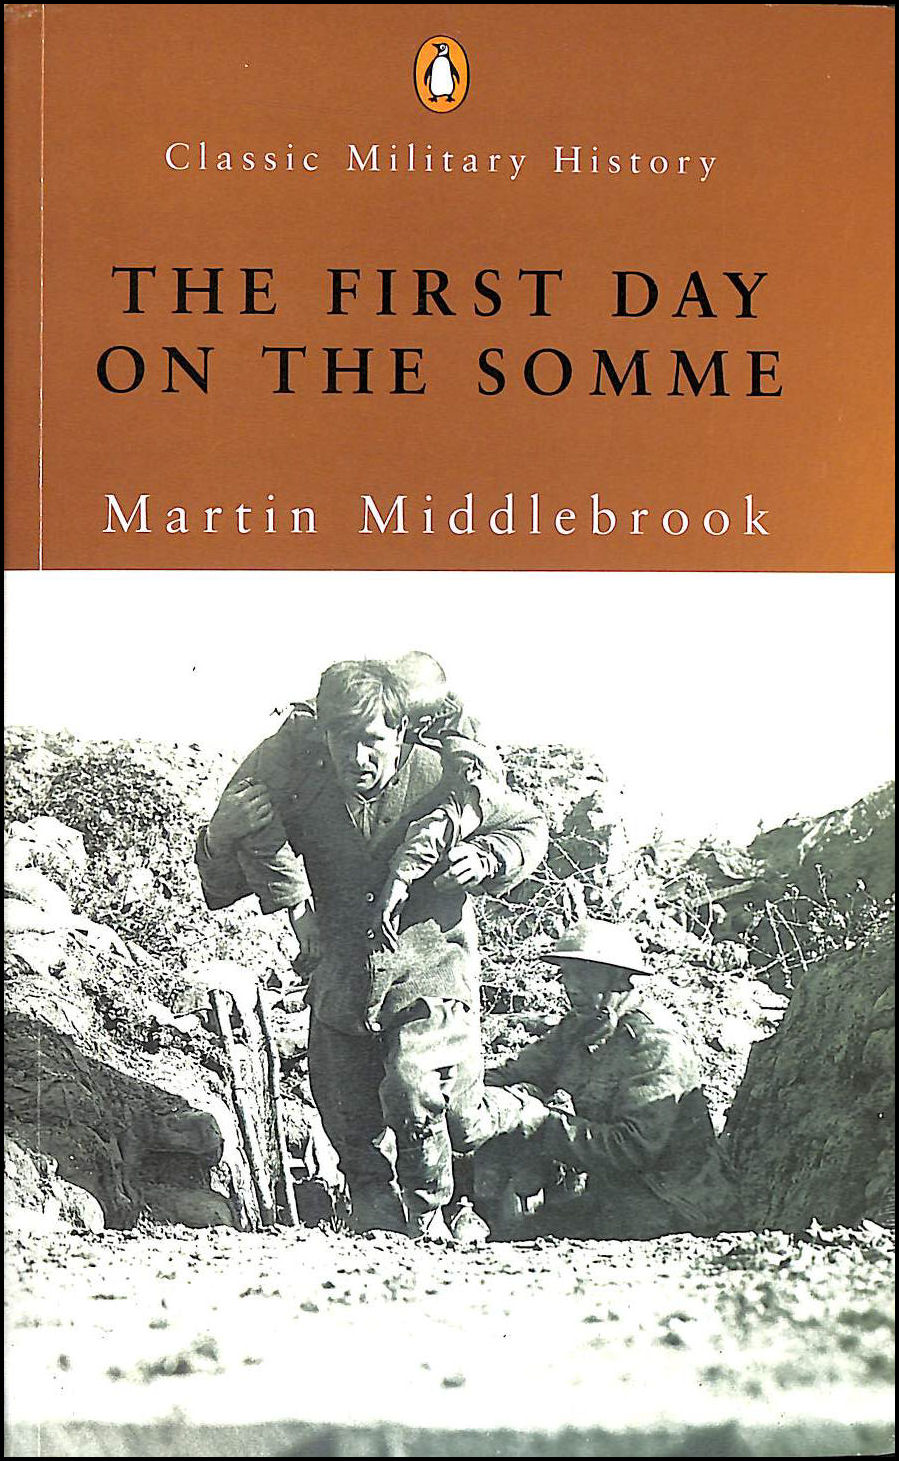 MIDDLEBROOK, MARTIN - The First Day on the Somme